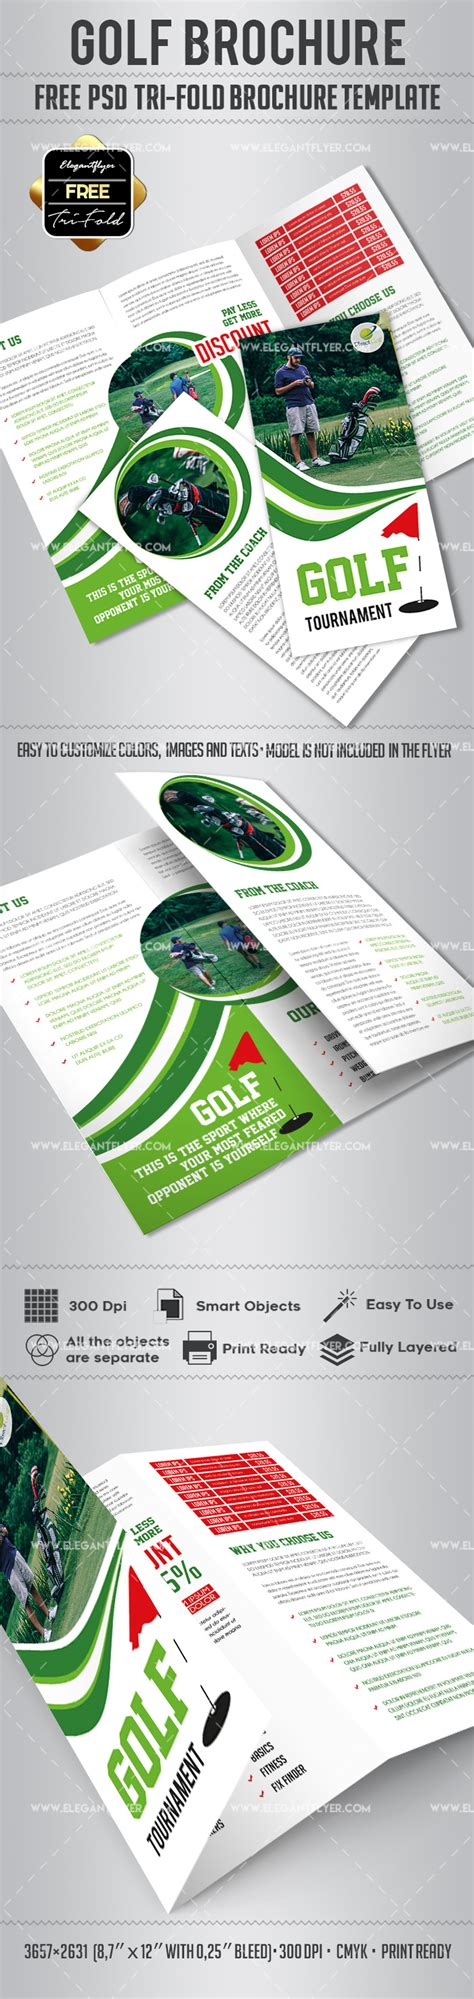 Tri Fold Brochure Templates Free By Elegantflyer Golf Free Psd Tri Fold Psd Brochure Template By